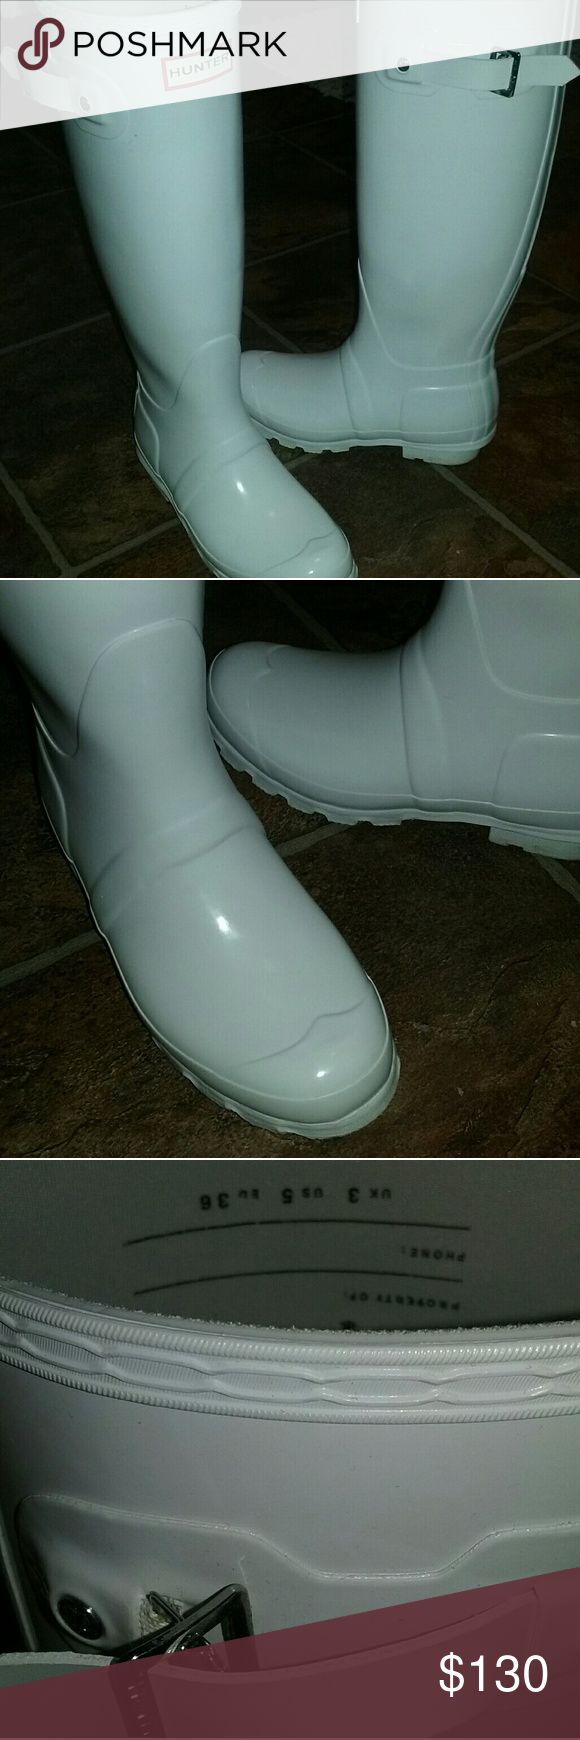 HUNTER Original Gloss White Rain Boots 5 GORGEOUS boots! Like new condition,  worn once, will come with box. Gloss finish! Really beautiful! No flaws to mention! Size 5 Women, fits a 5 to a 6! Hunter Boots Shoes Winter & Rain Boots